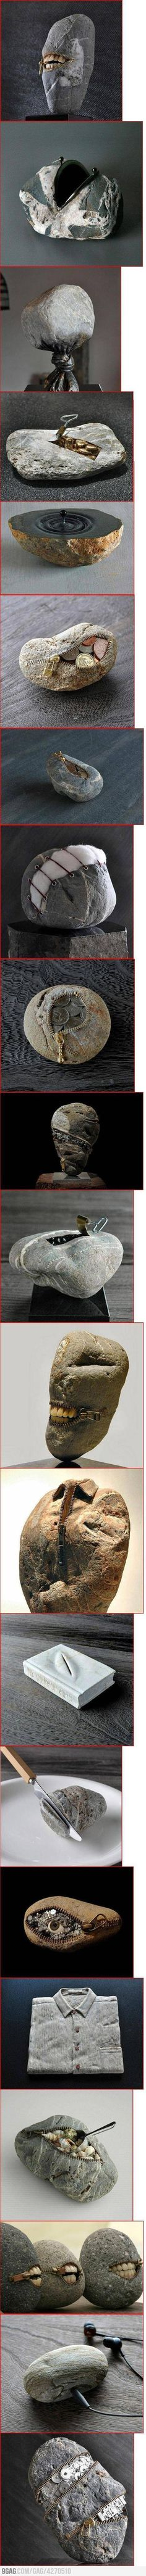 Art made with rocks! (Cool Guy Weird)